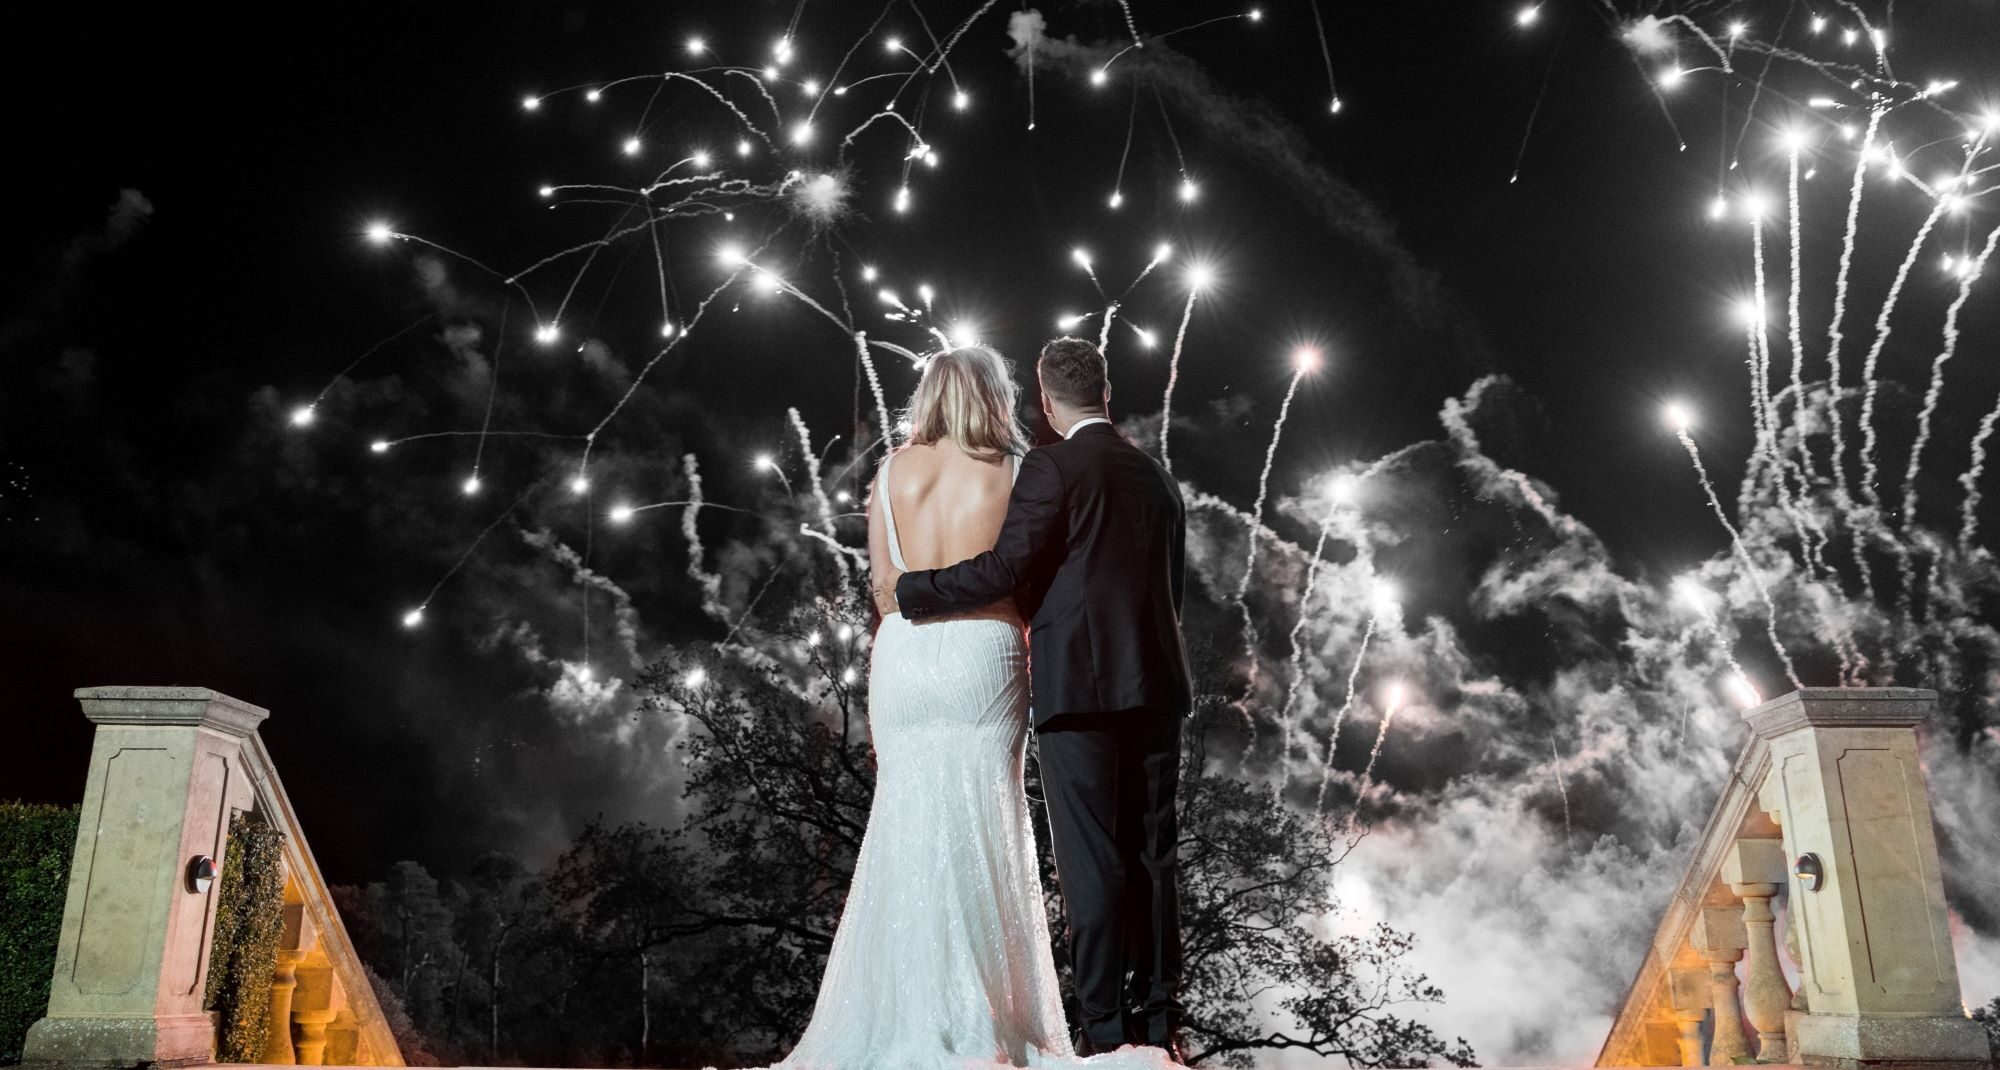 bride grooms fireworks display kilworth house hotel leicestershire oxford wedding photography